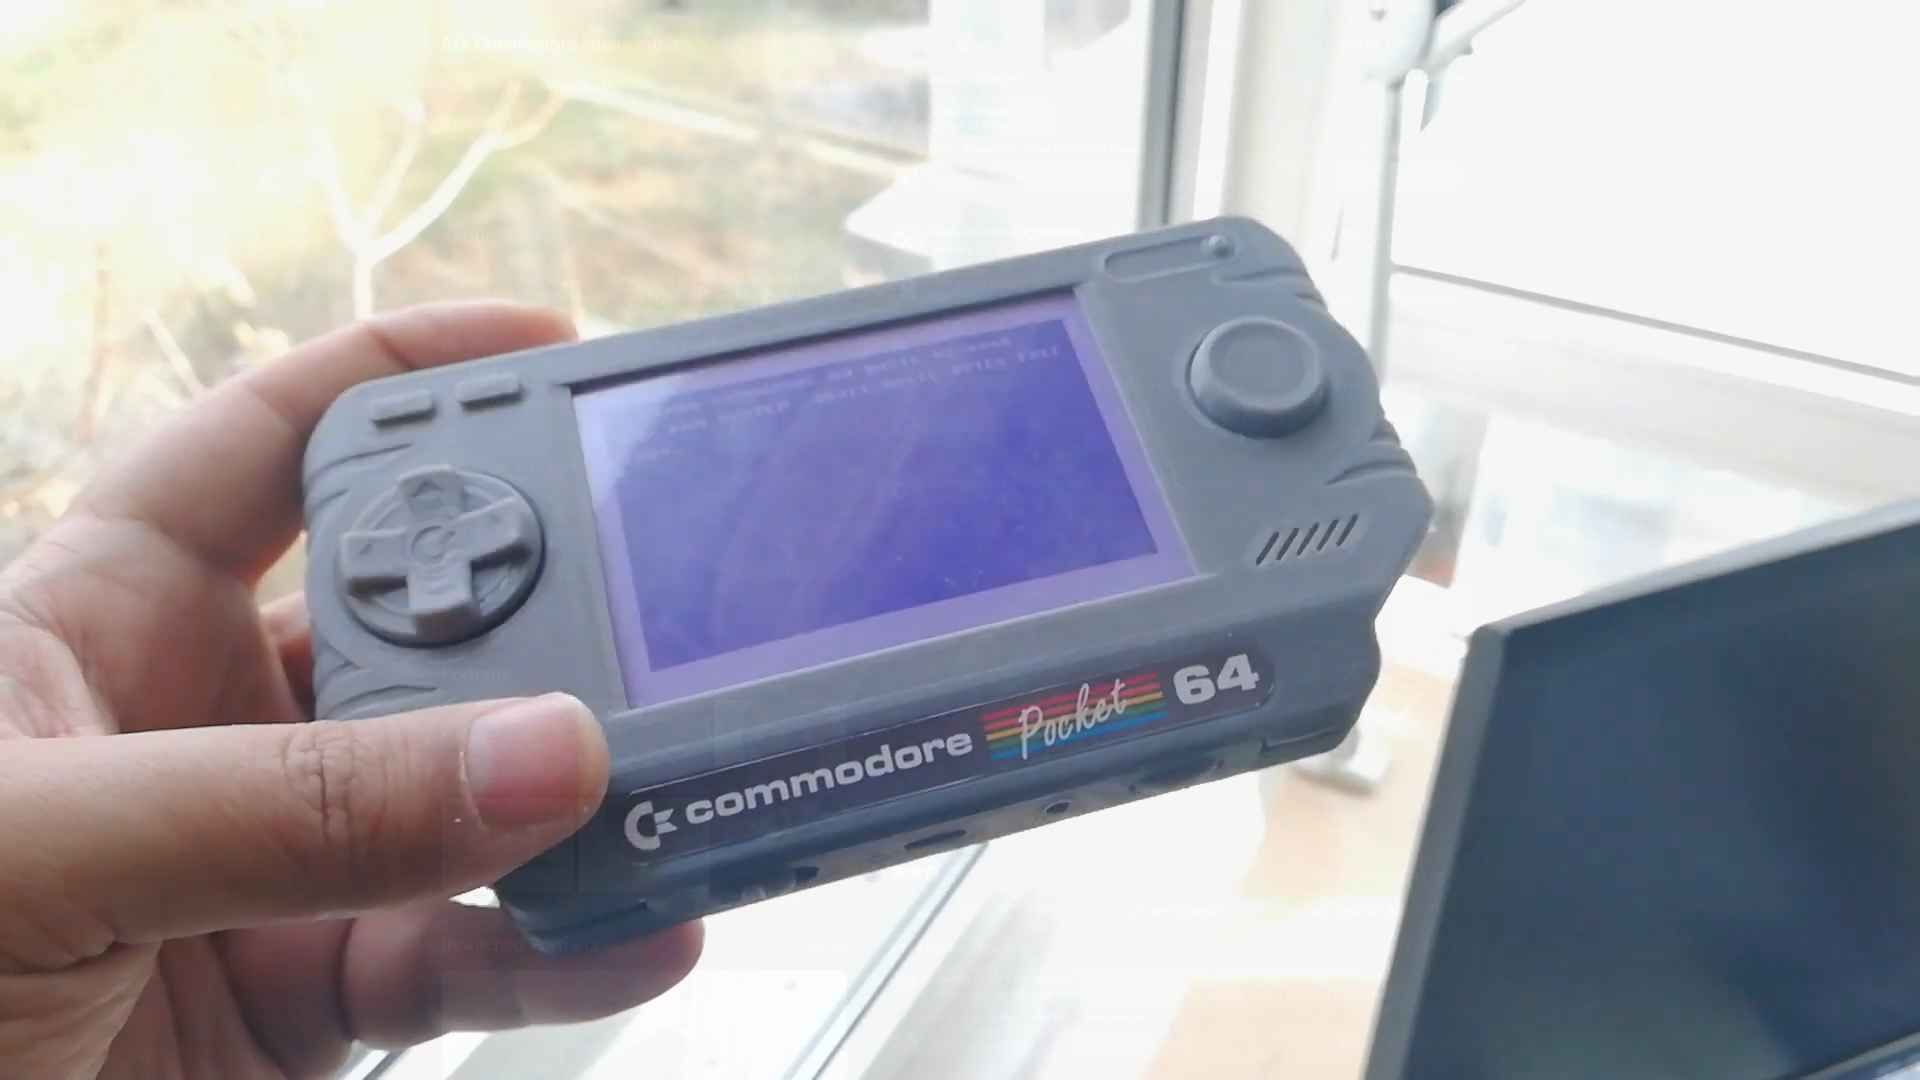 A new plastic looking Commodore handheld